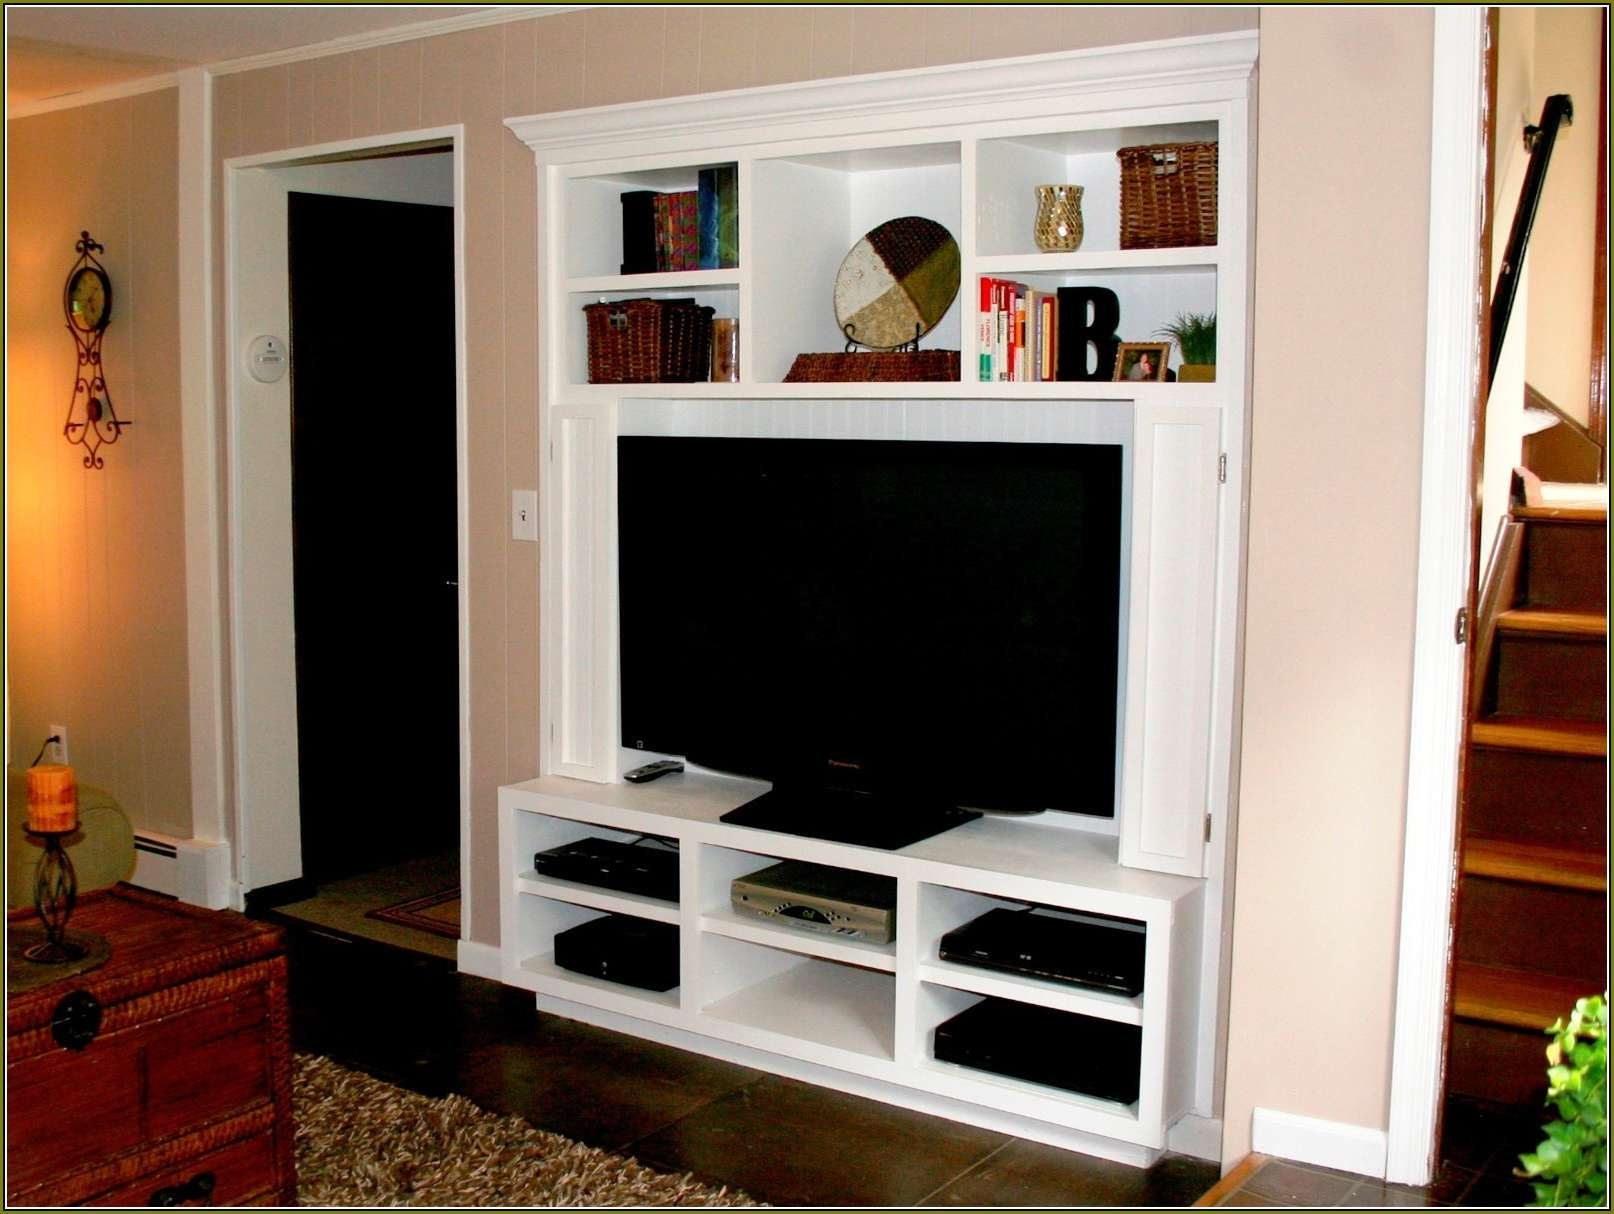 Invigorating Wall Mounted Tv Cabinets For As Wells As Flat Screens In Wall Mounted Tv Cabinets For Flat Screens (View 10 of 20)